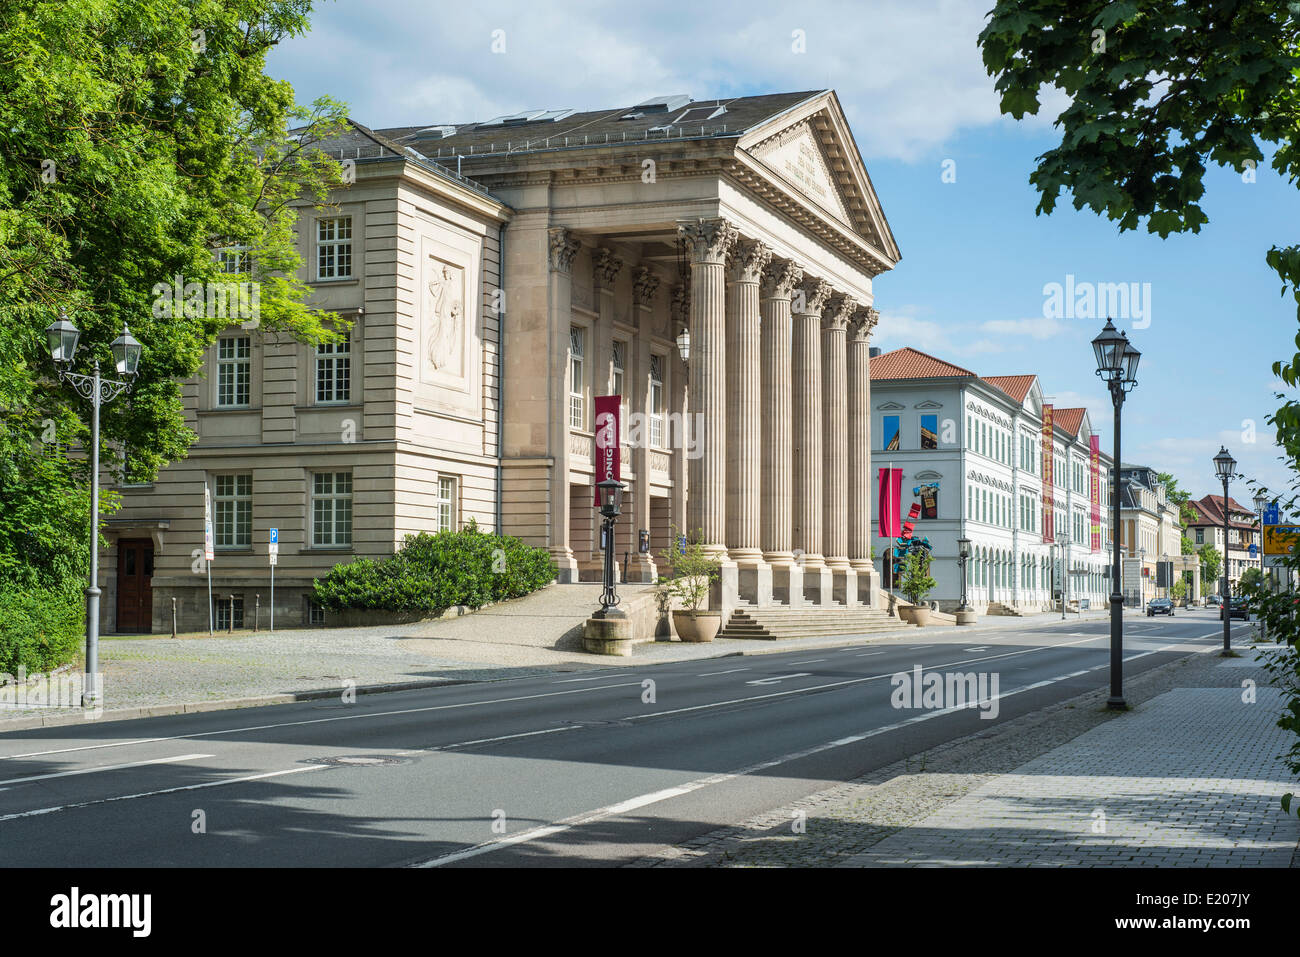 Das Meininger Theater, Neoclassicism, 1909, Meiningen, Thuringia, Germany - Stock Image